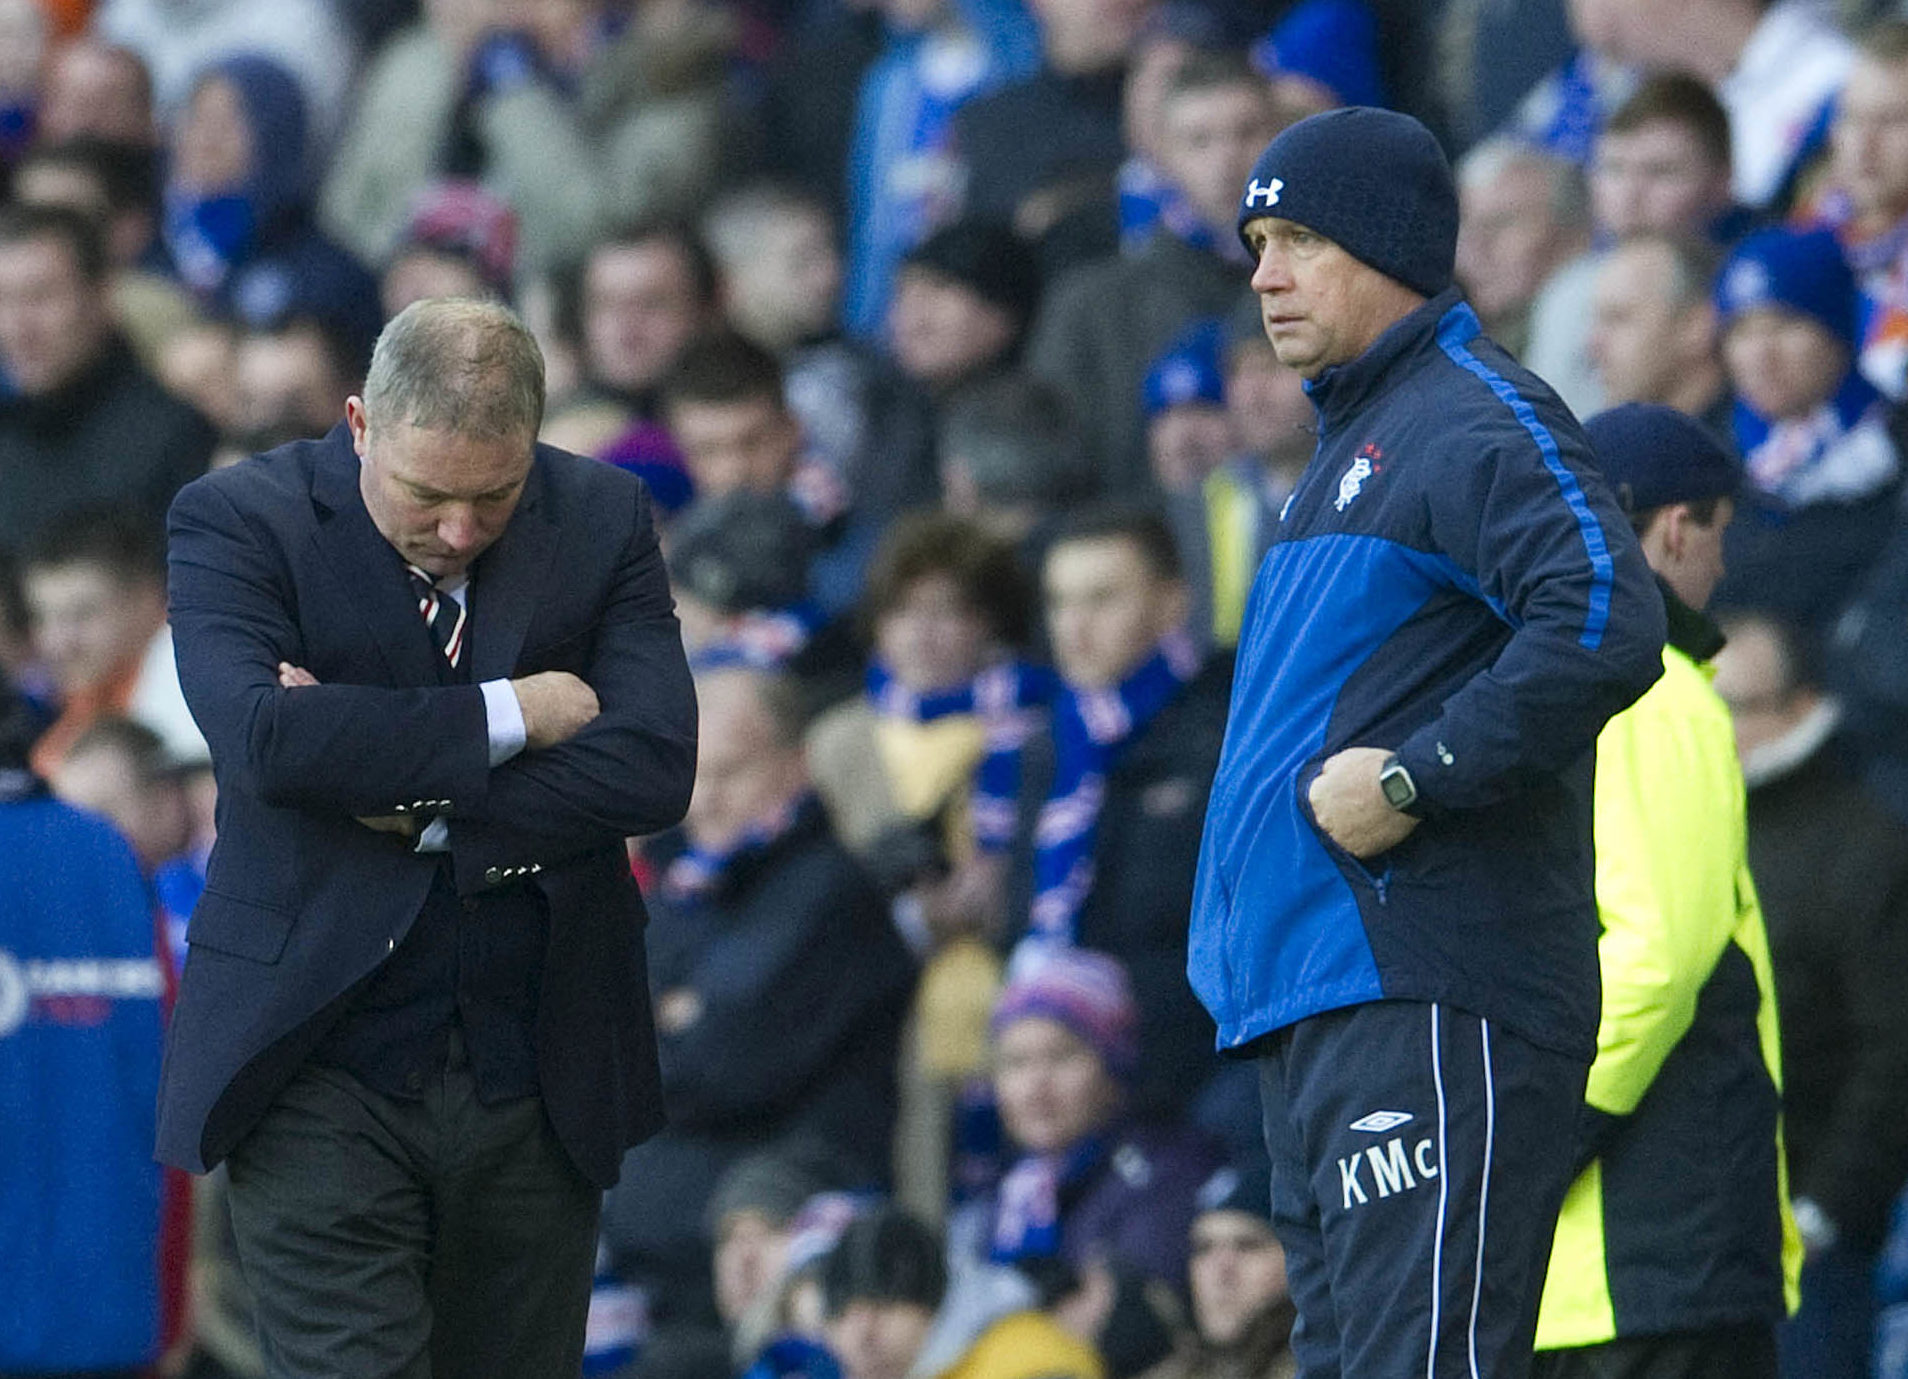 Rangers manager Ally McCoist looks to the turf as assistant Kenny McDowall (right) looks on